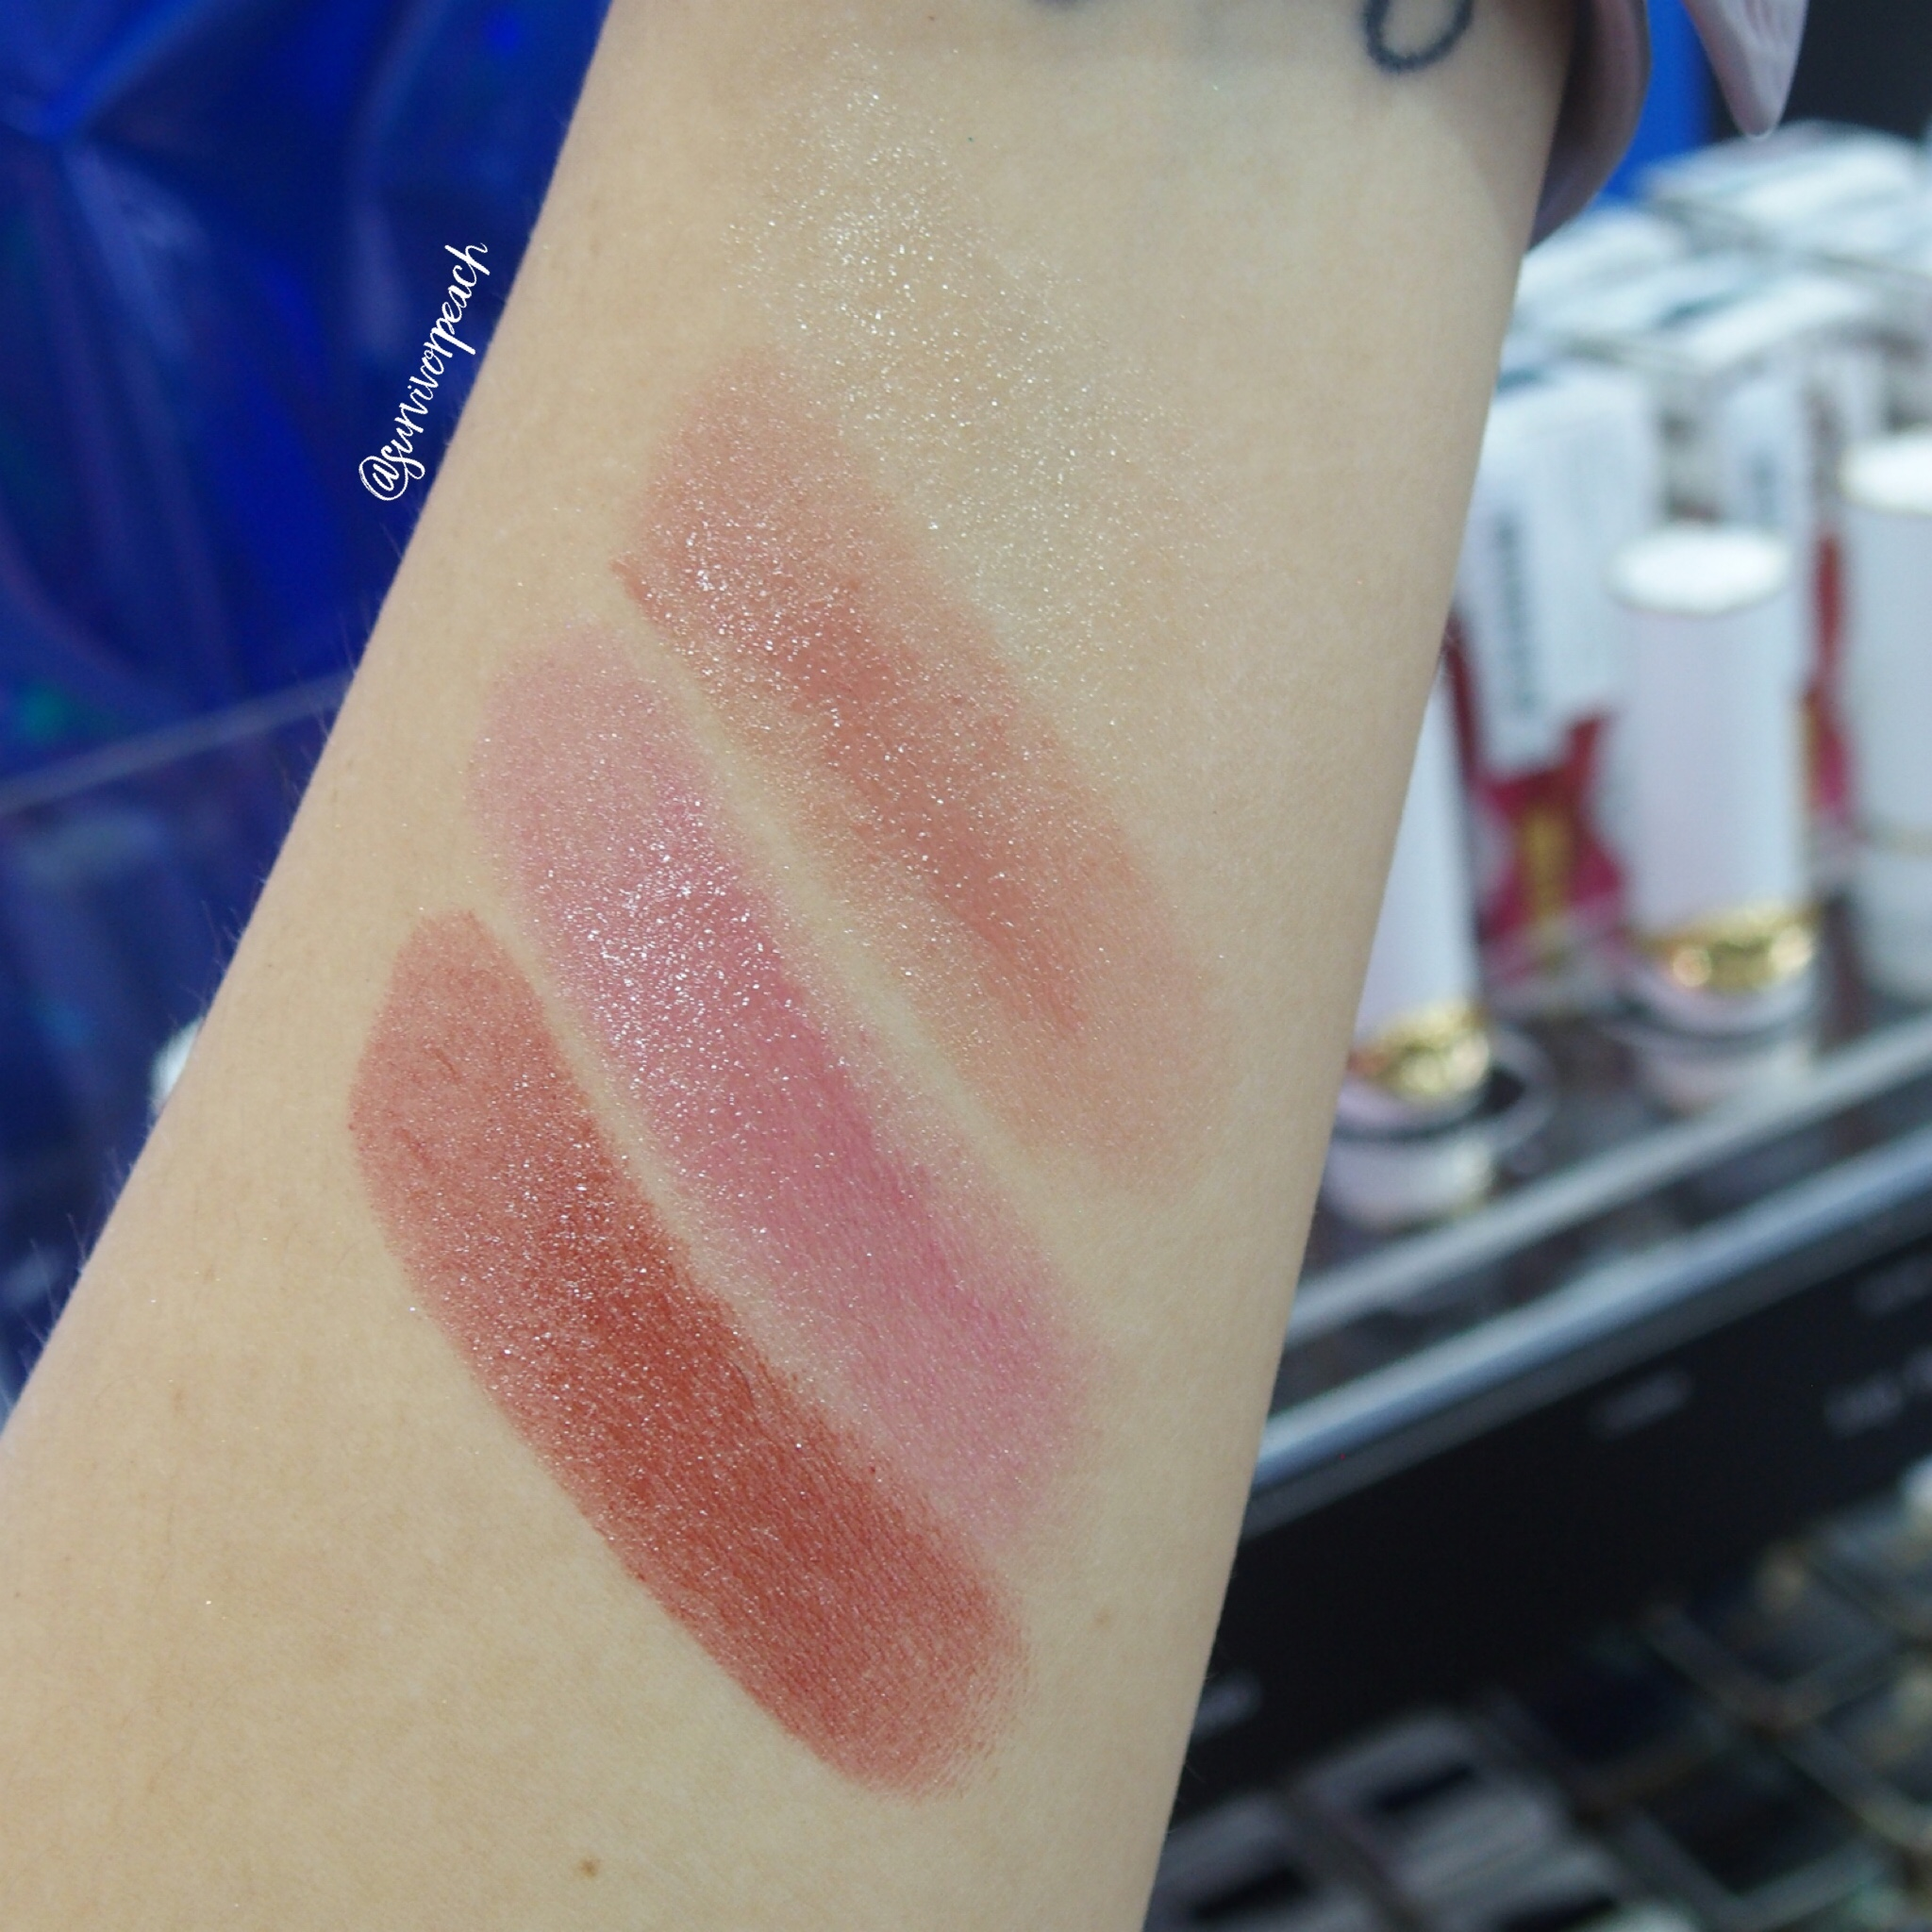 Swatches of the Pat McGrath Lip Fetish Lip Balm: Clear, Blowup, Love Supreme, Flesh 3